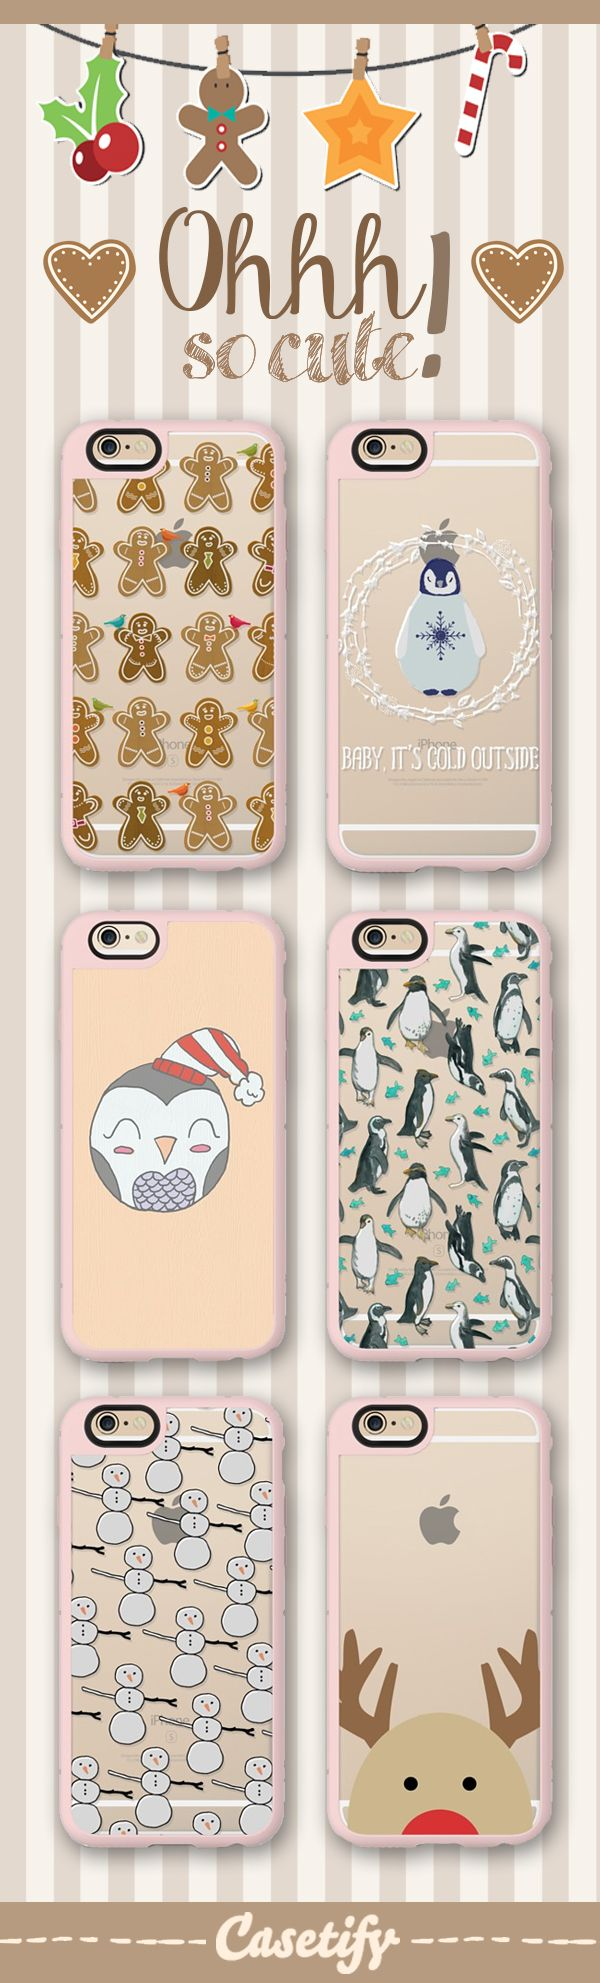 Just 6 more sleeps till Christmas Morning! All Christmas orders cut off TODAY. Enjoy FedEx Express shipping and order last minute gifts here: https://www.casetify.com/holidays#/